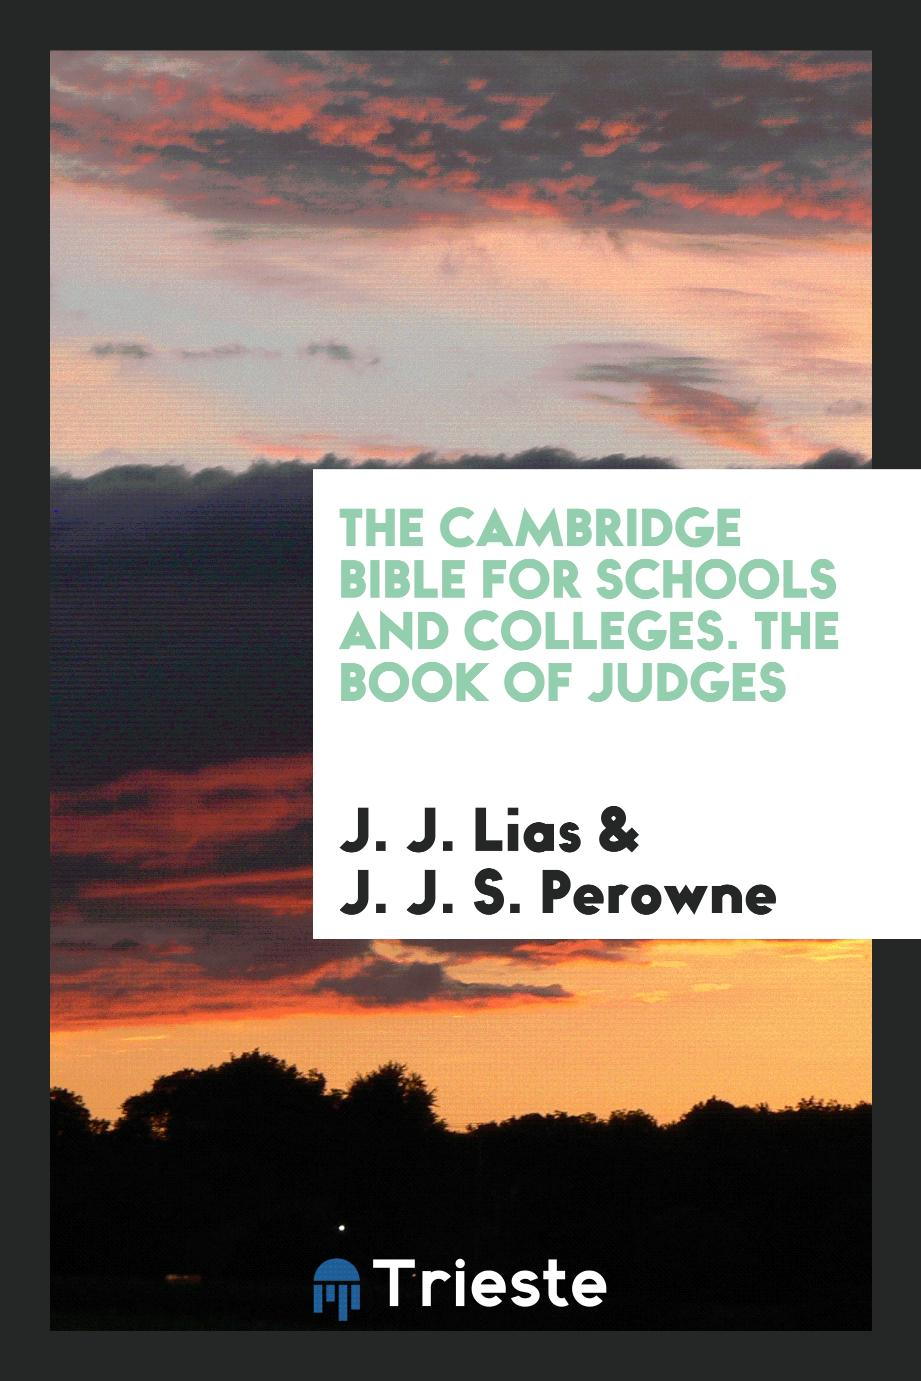 The Cambridge Bible for Schools and Colleges. The Book of Judges